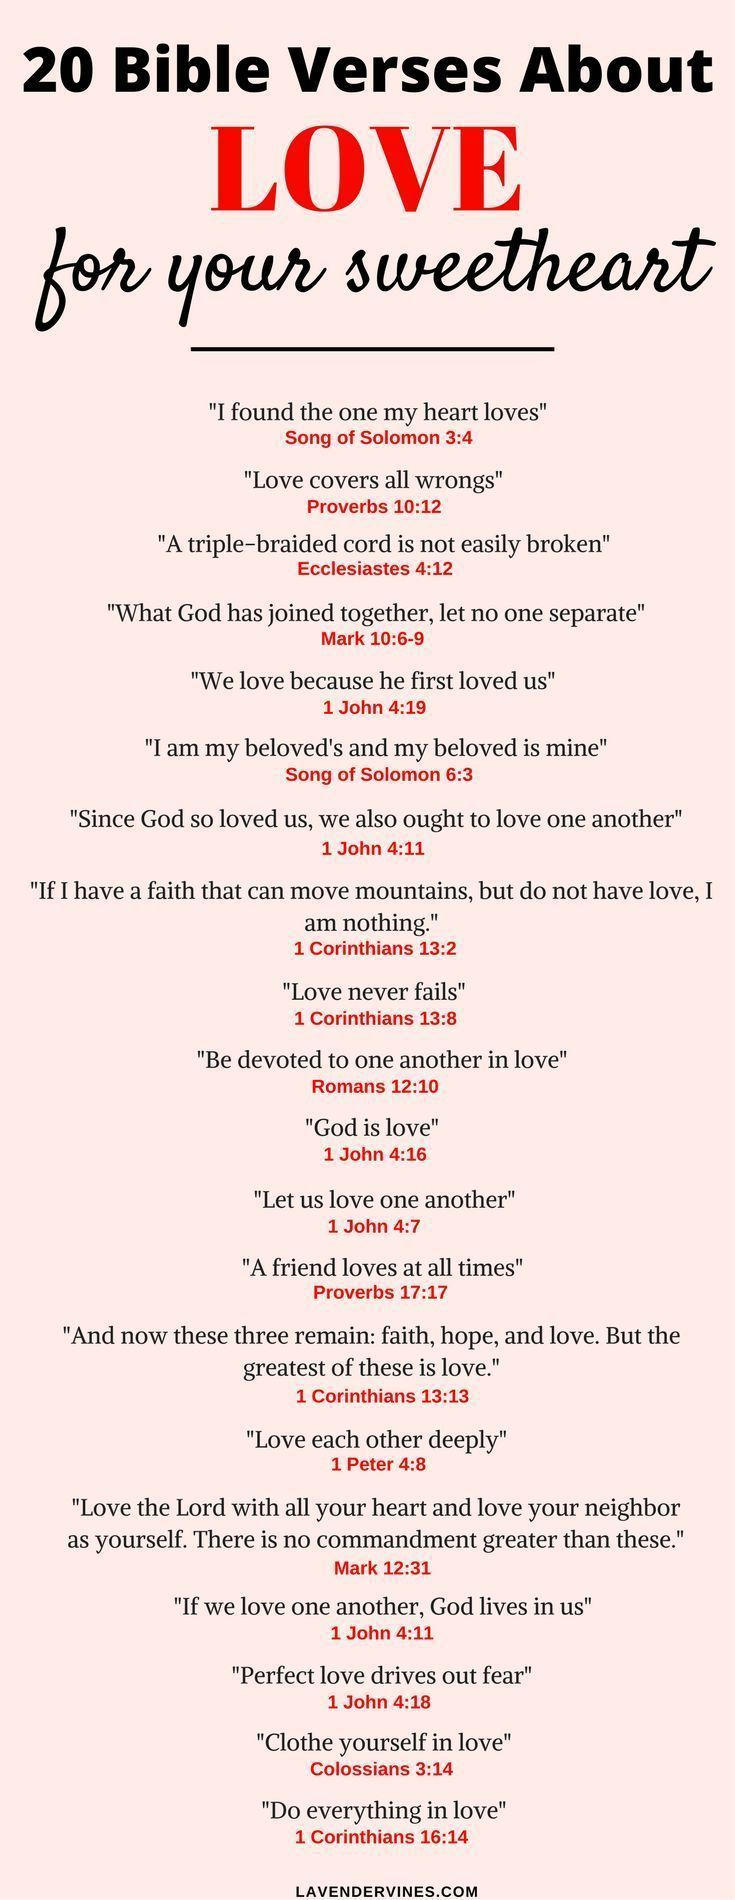 There are so many bible verses about love in the Bible. I hope this list of love bible verses helps you with inspiration for bible verses about relationships and marriage #bibleverse #bible #Jesus #love #God #faith #christian #christianity